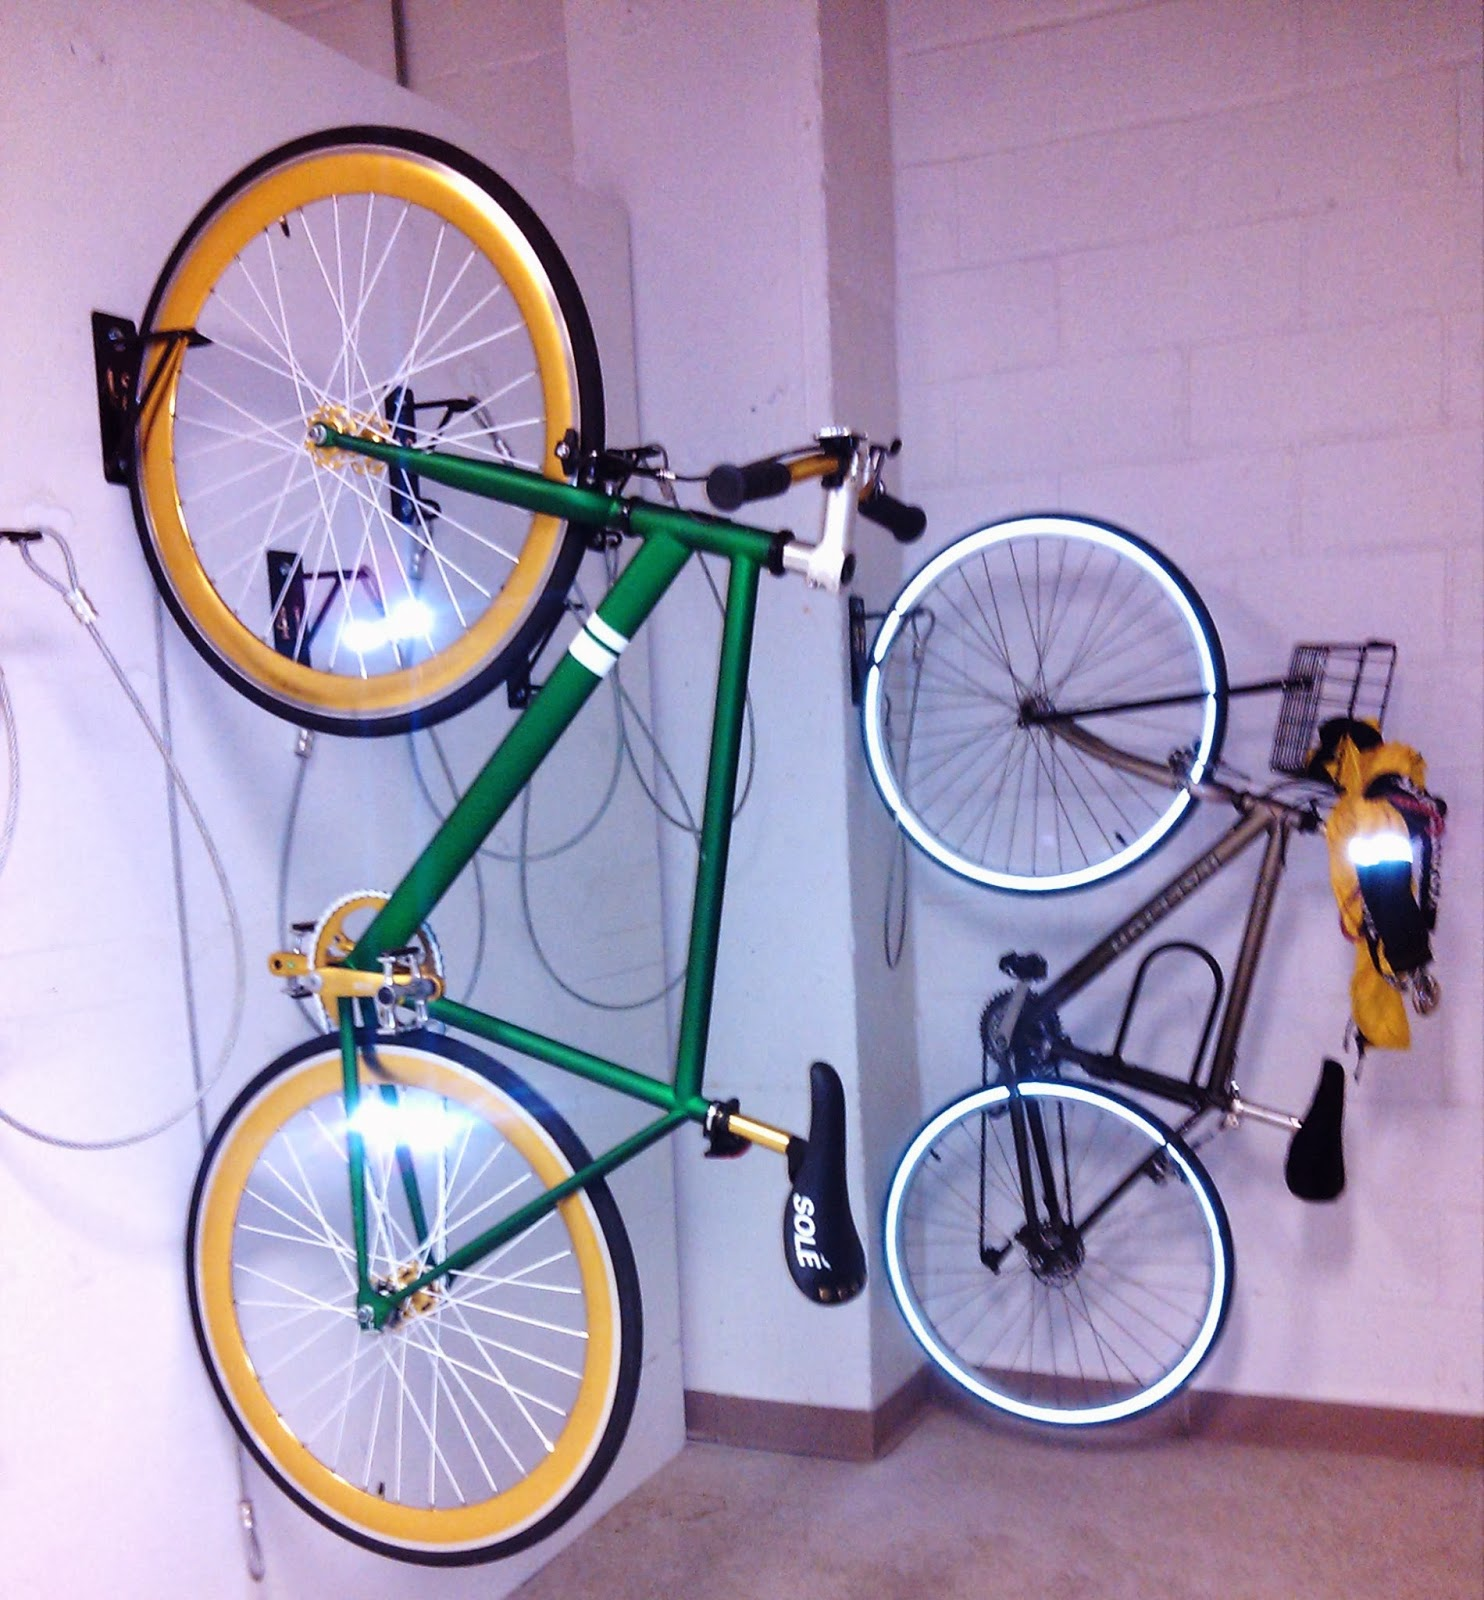 Bike Room Storage Solutions | How To Create A User Friendly, Space  Efficient Bike Room